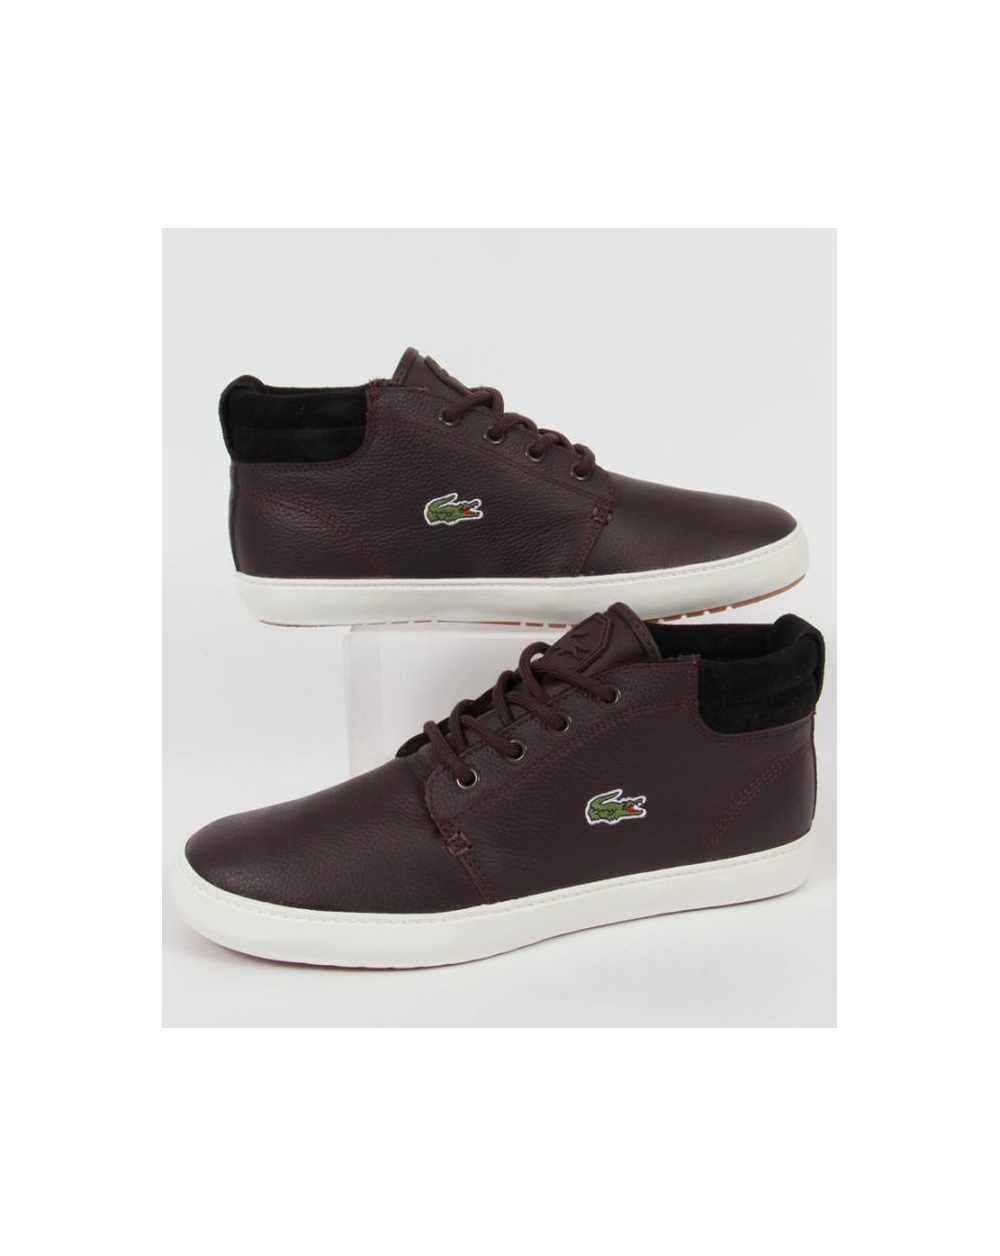 lacoste thill terra boots brown lacoste thill terra